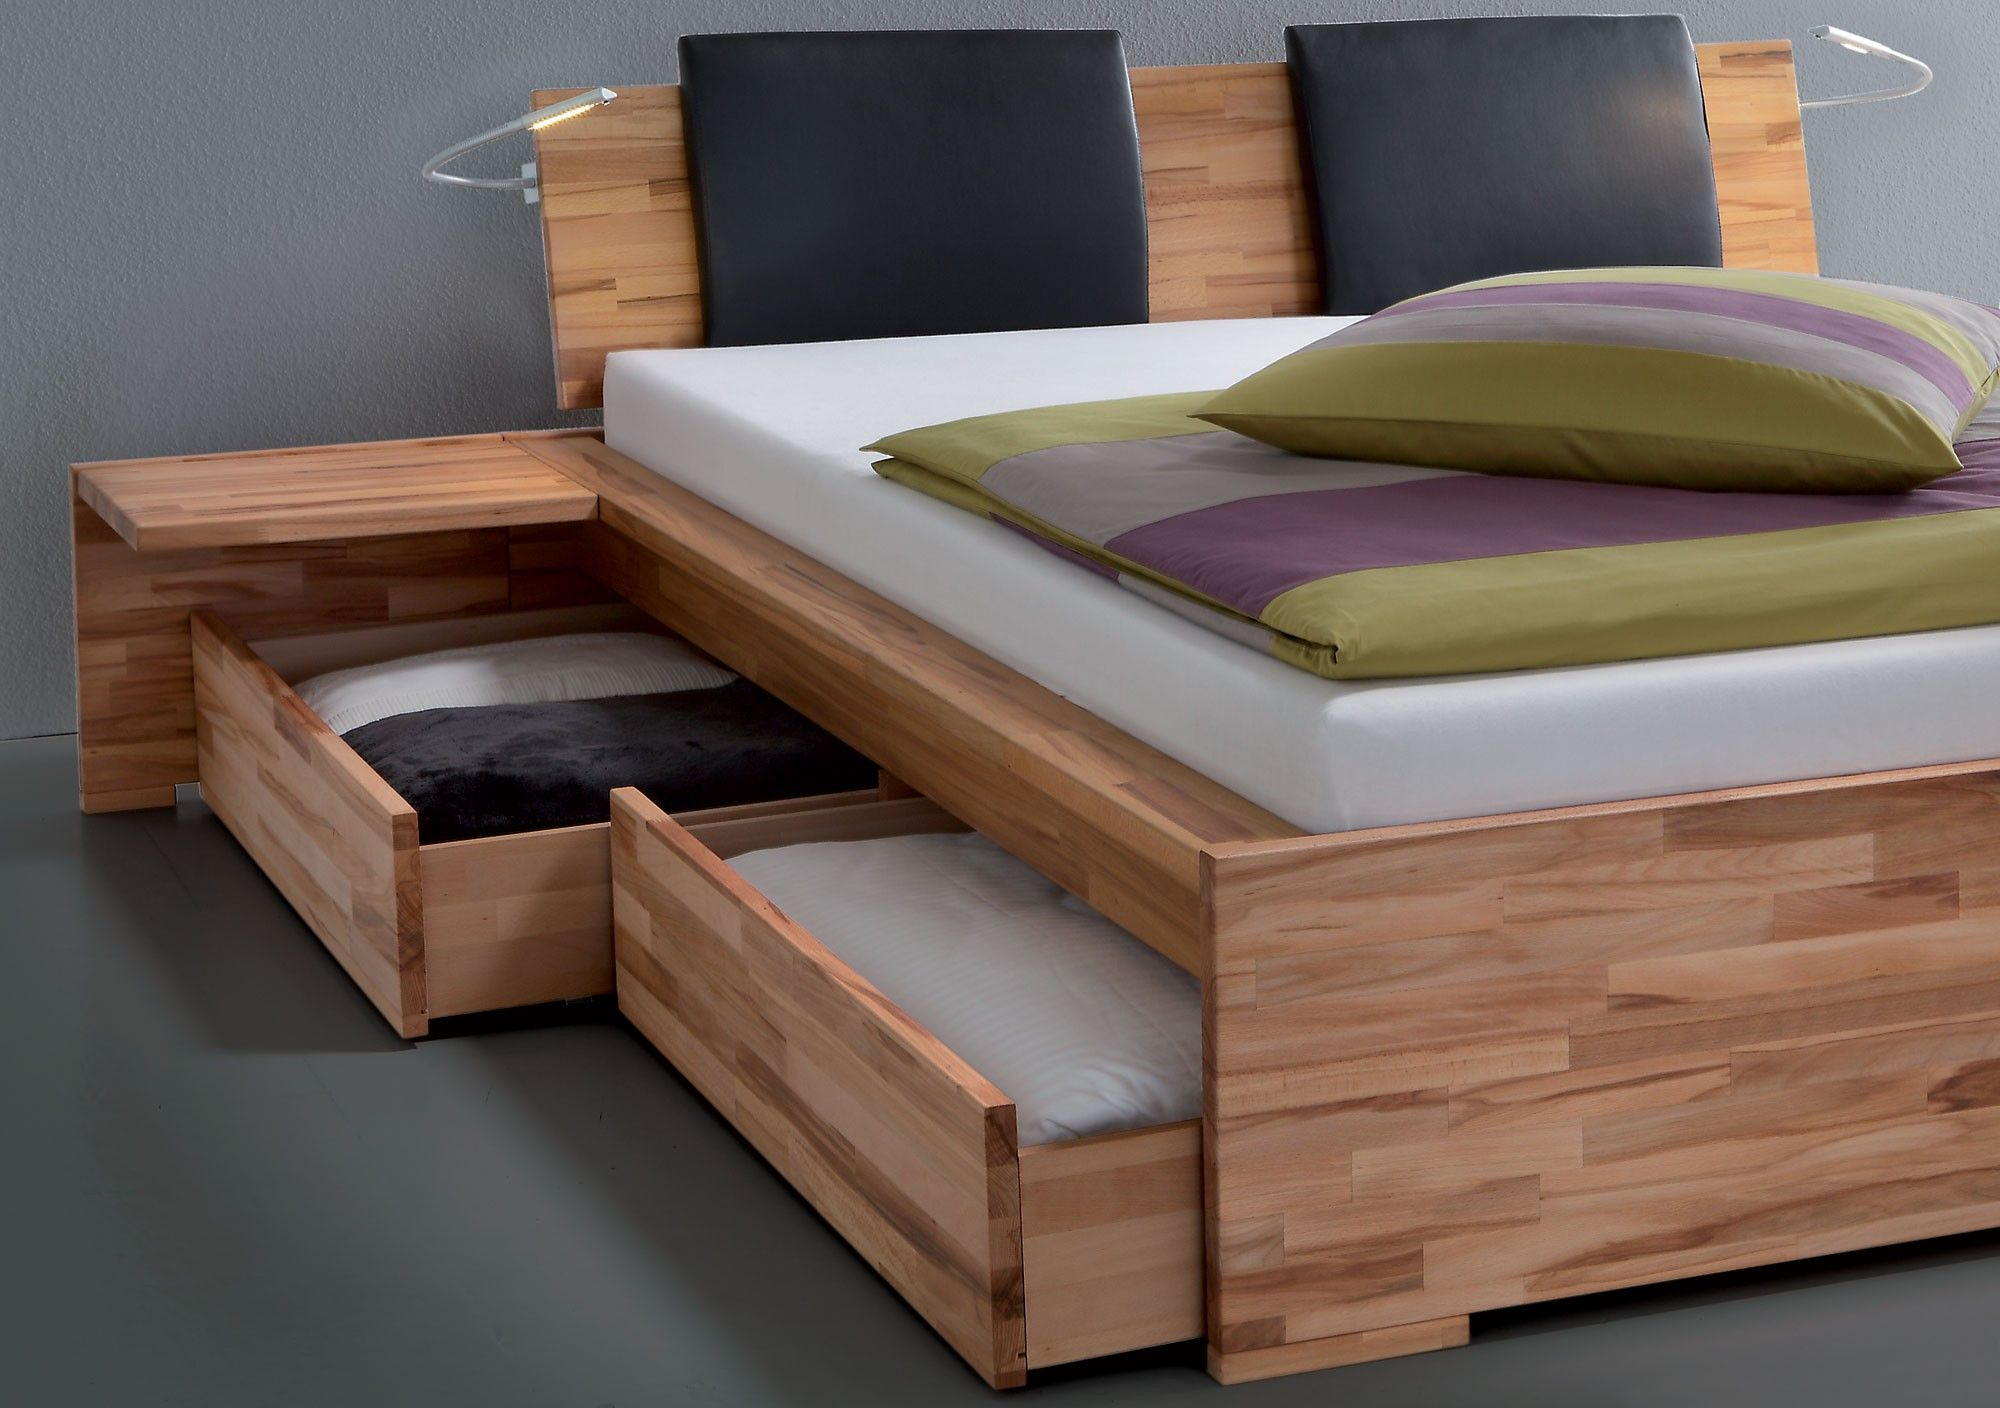 Likable storage beds nyc inspiration pinteres for Double bed with drawers and mattress